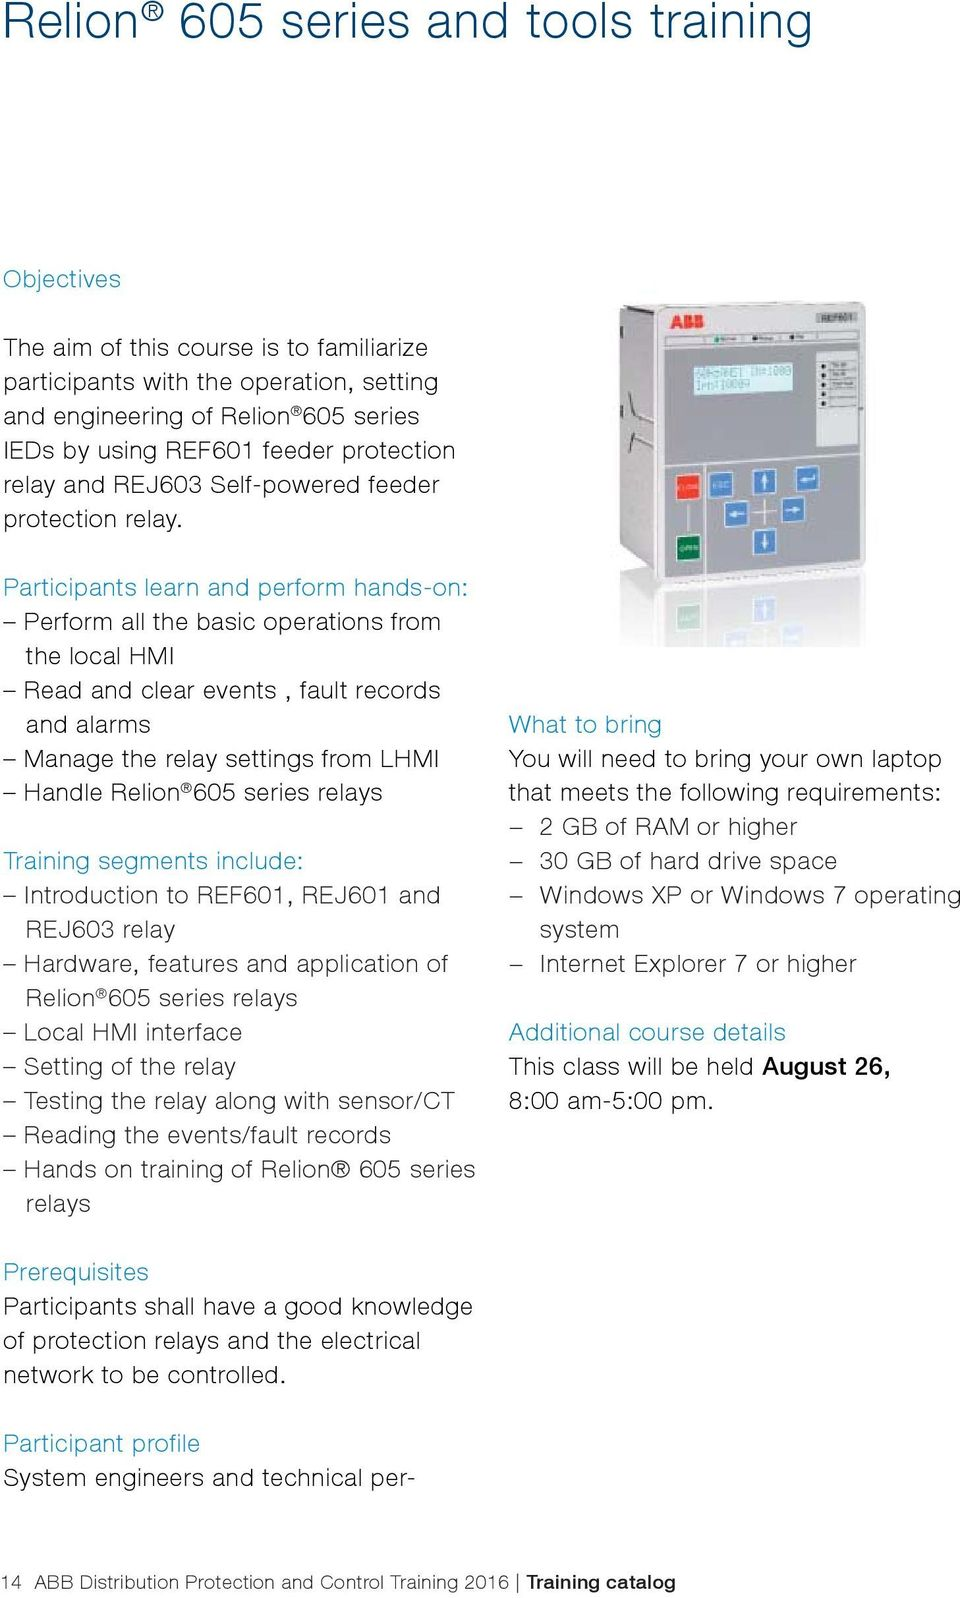 Training Catalog Abb Distribution Automation 2016 Relay Basic Operation Of A Participants Learn And Perform Hands On All The Operations From Local